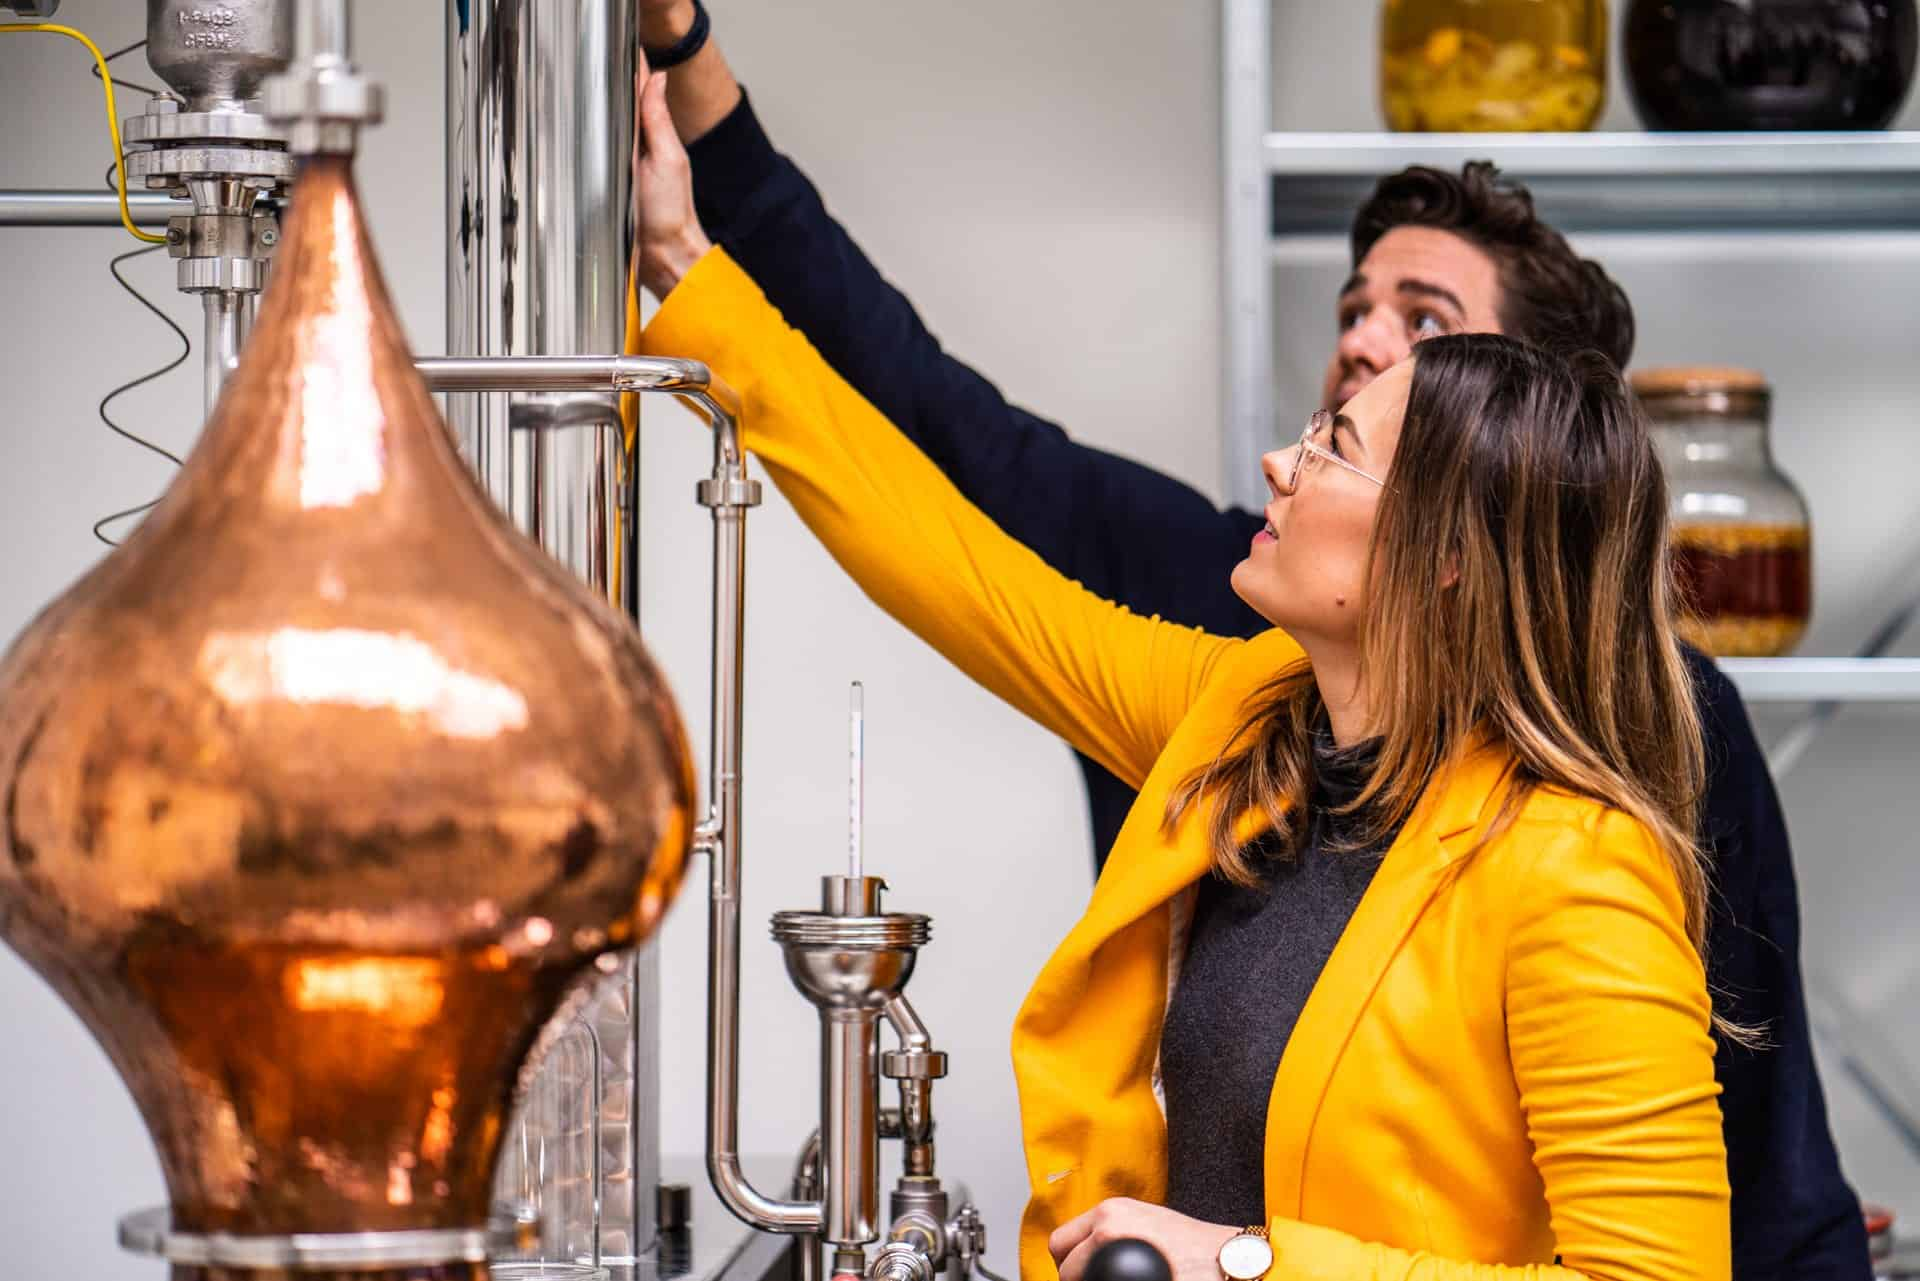 Tour and tasting in the spirited union distillery in amsterdam